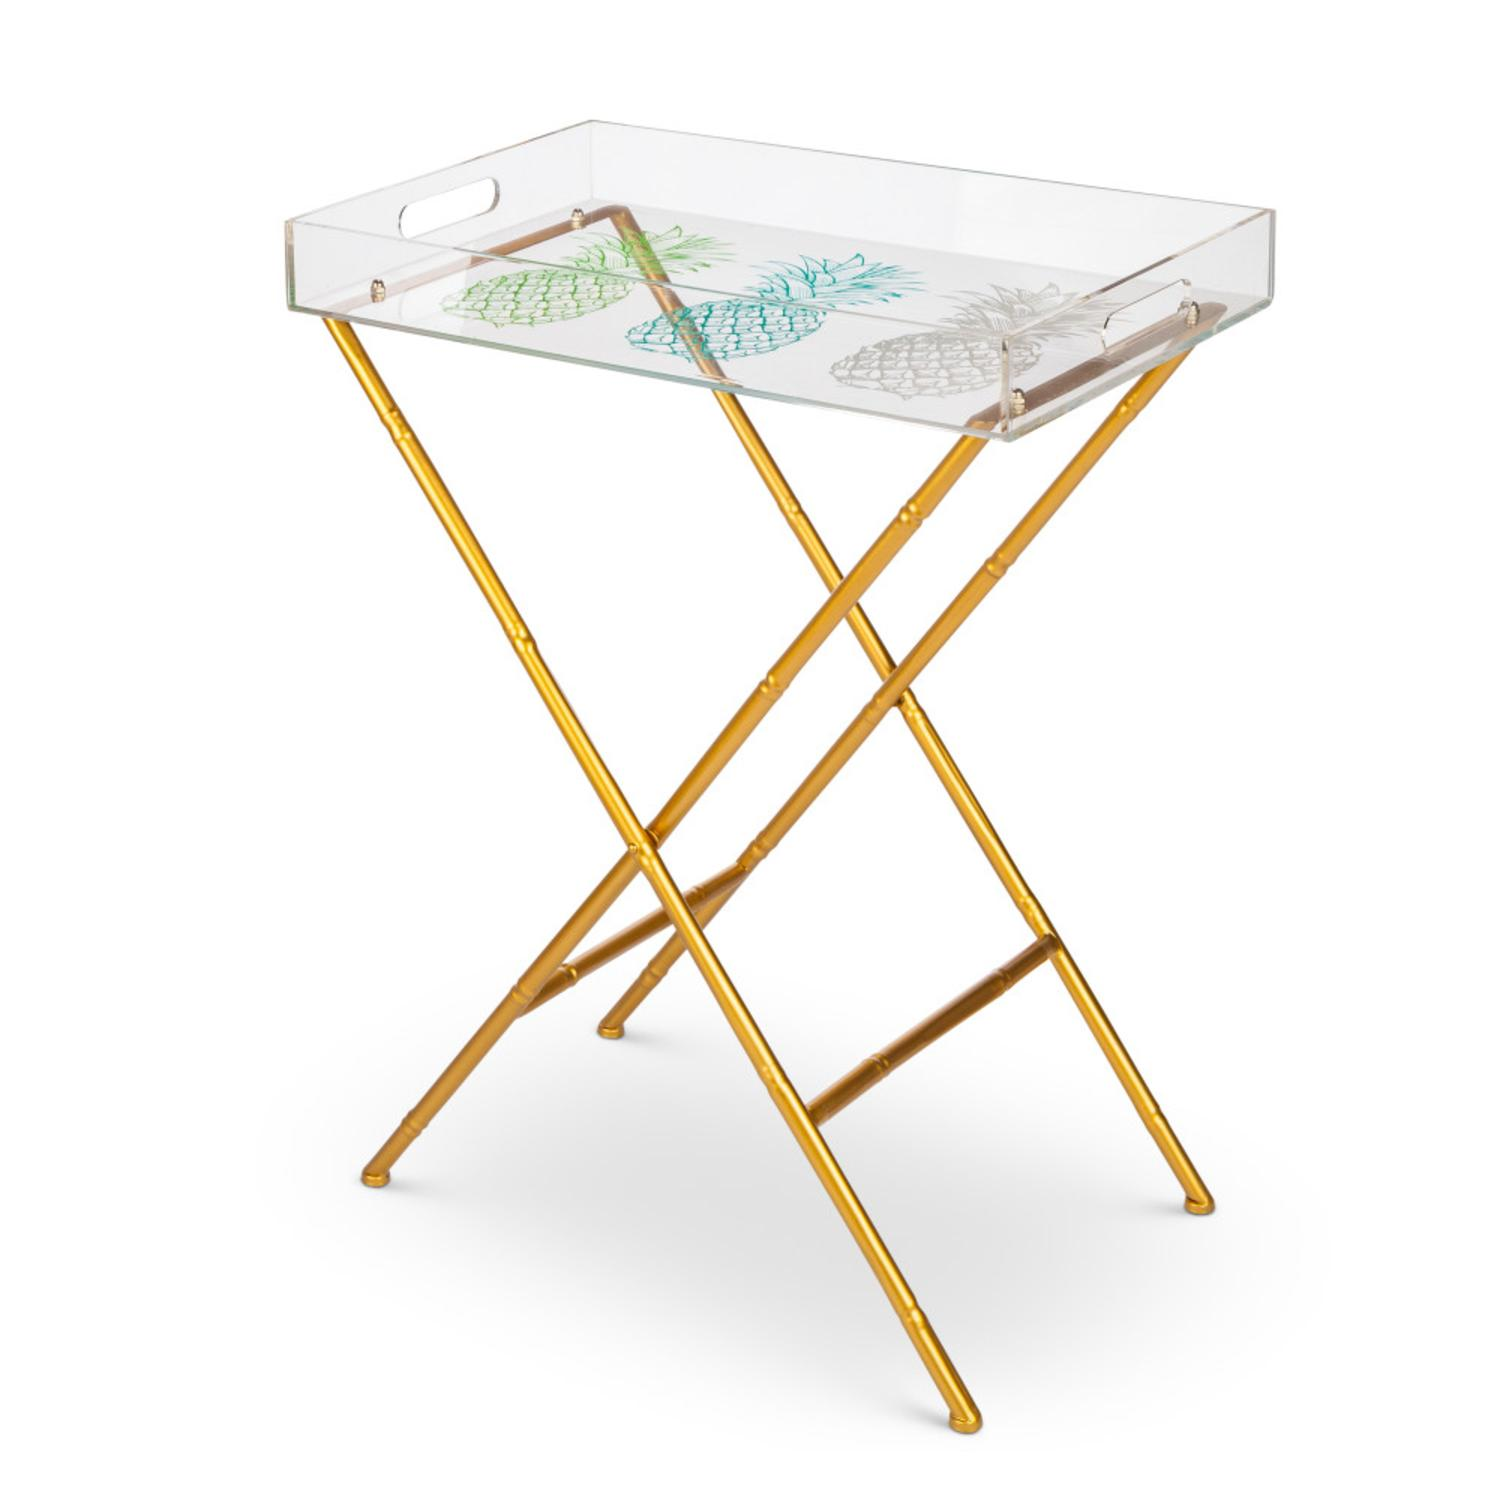 "28.6"" Clear Pineapple Top Removable Tray Table with Golden Folding Legs"